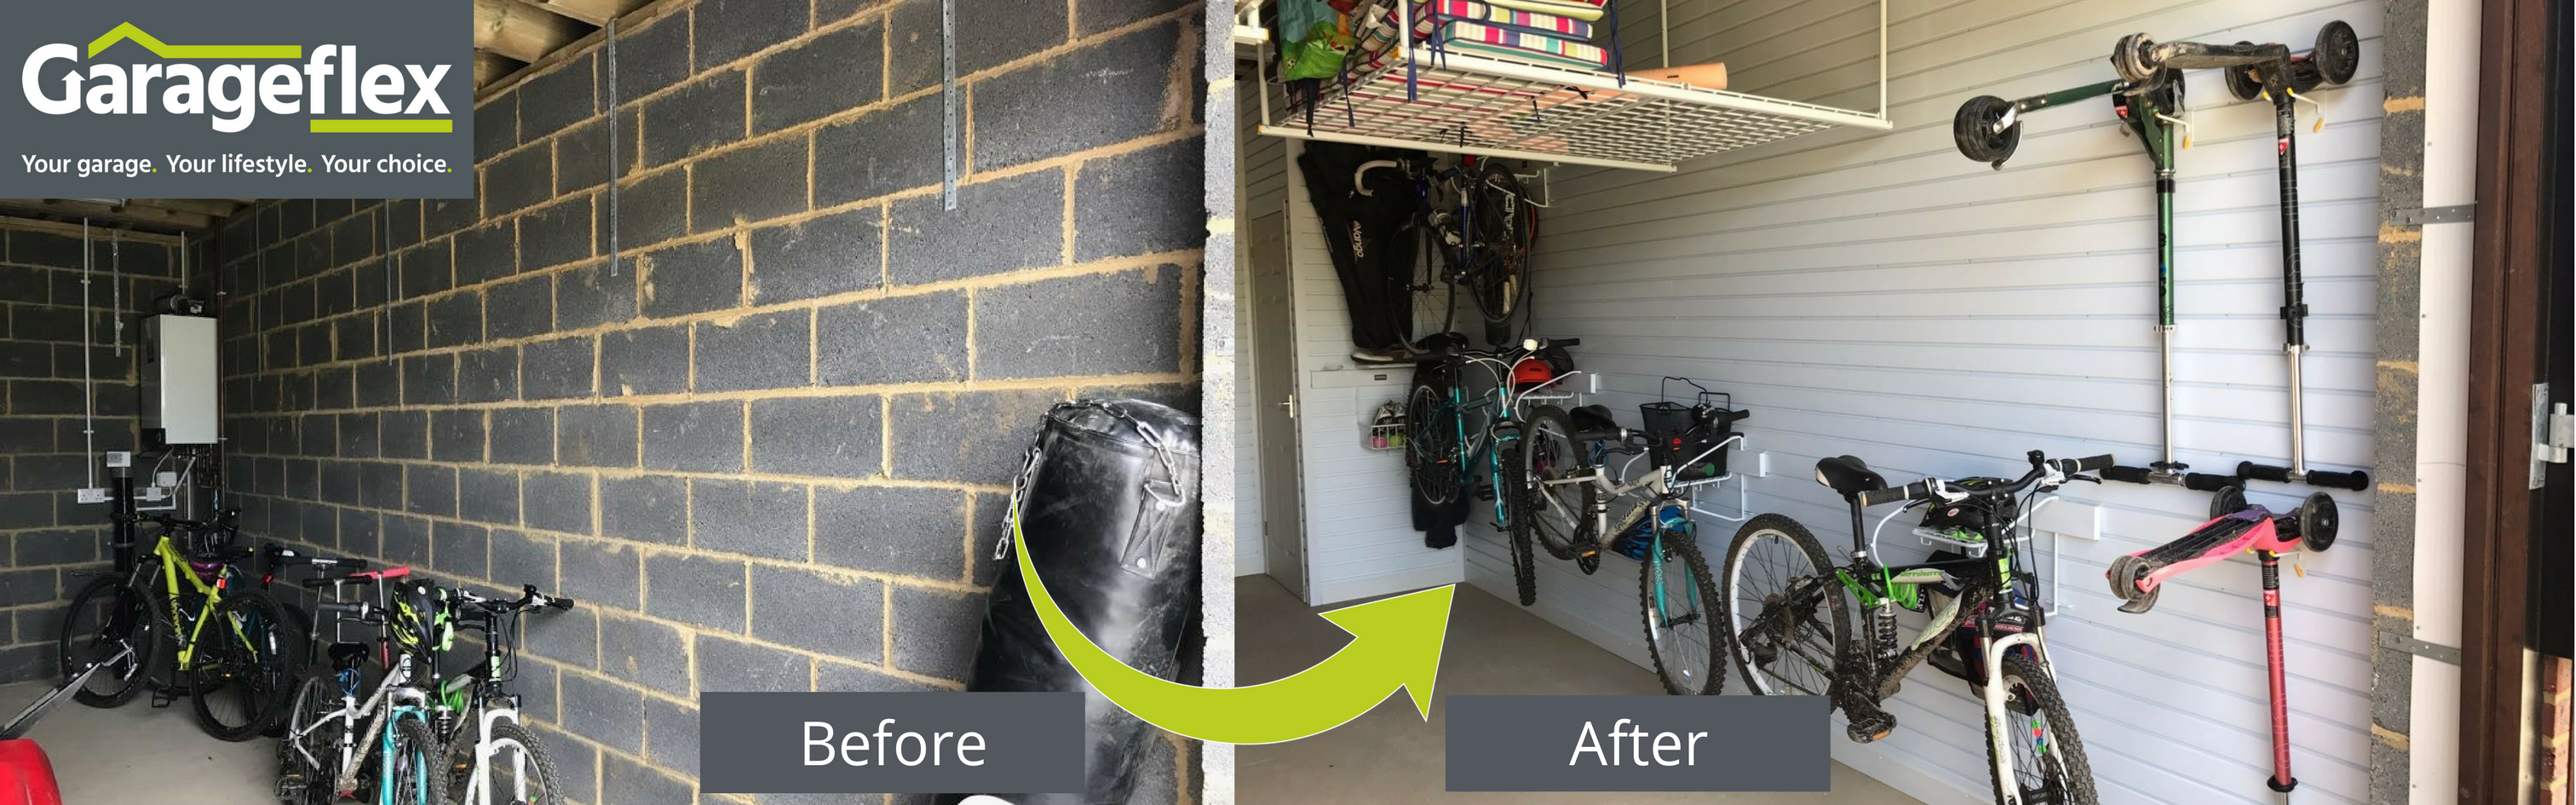 Hertfordshire New Build Garage Storage Solutions Before and After by Garageflex